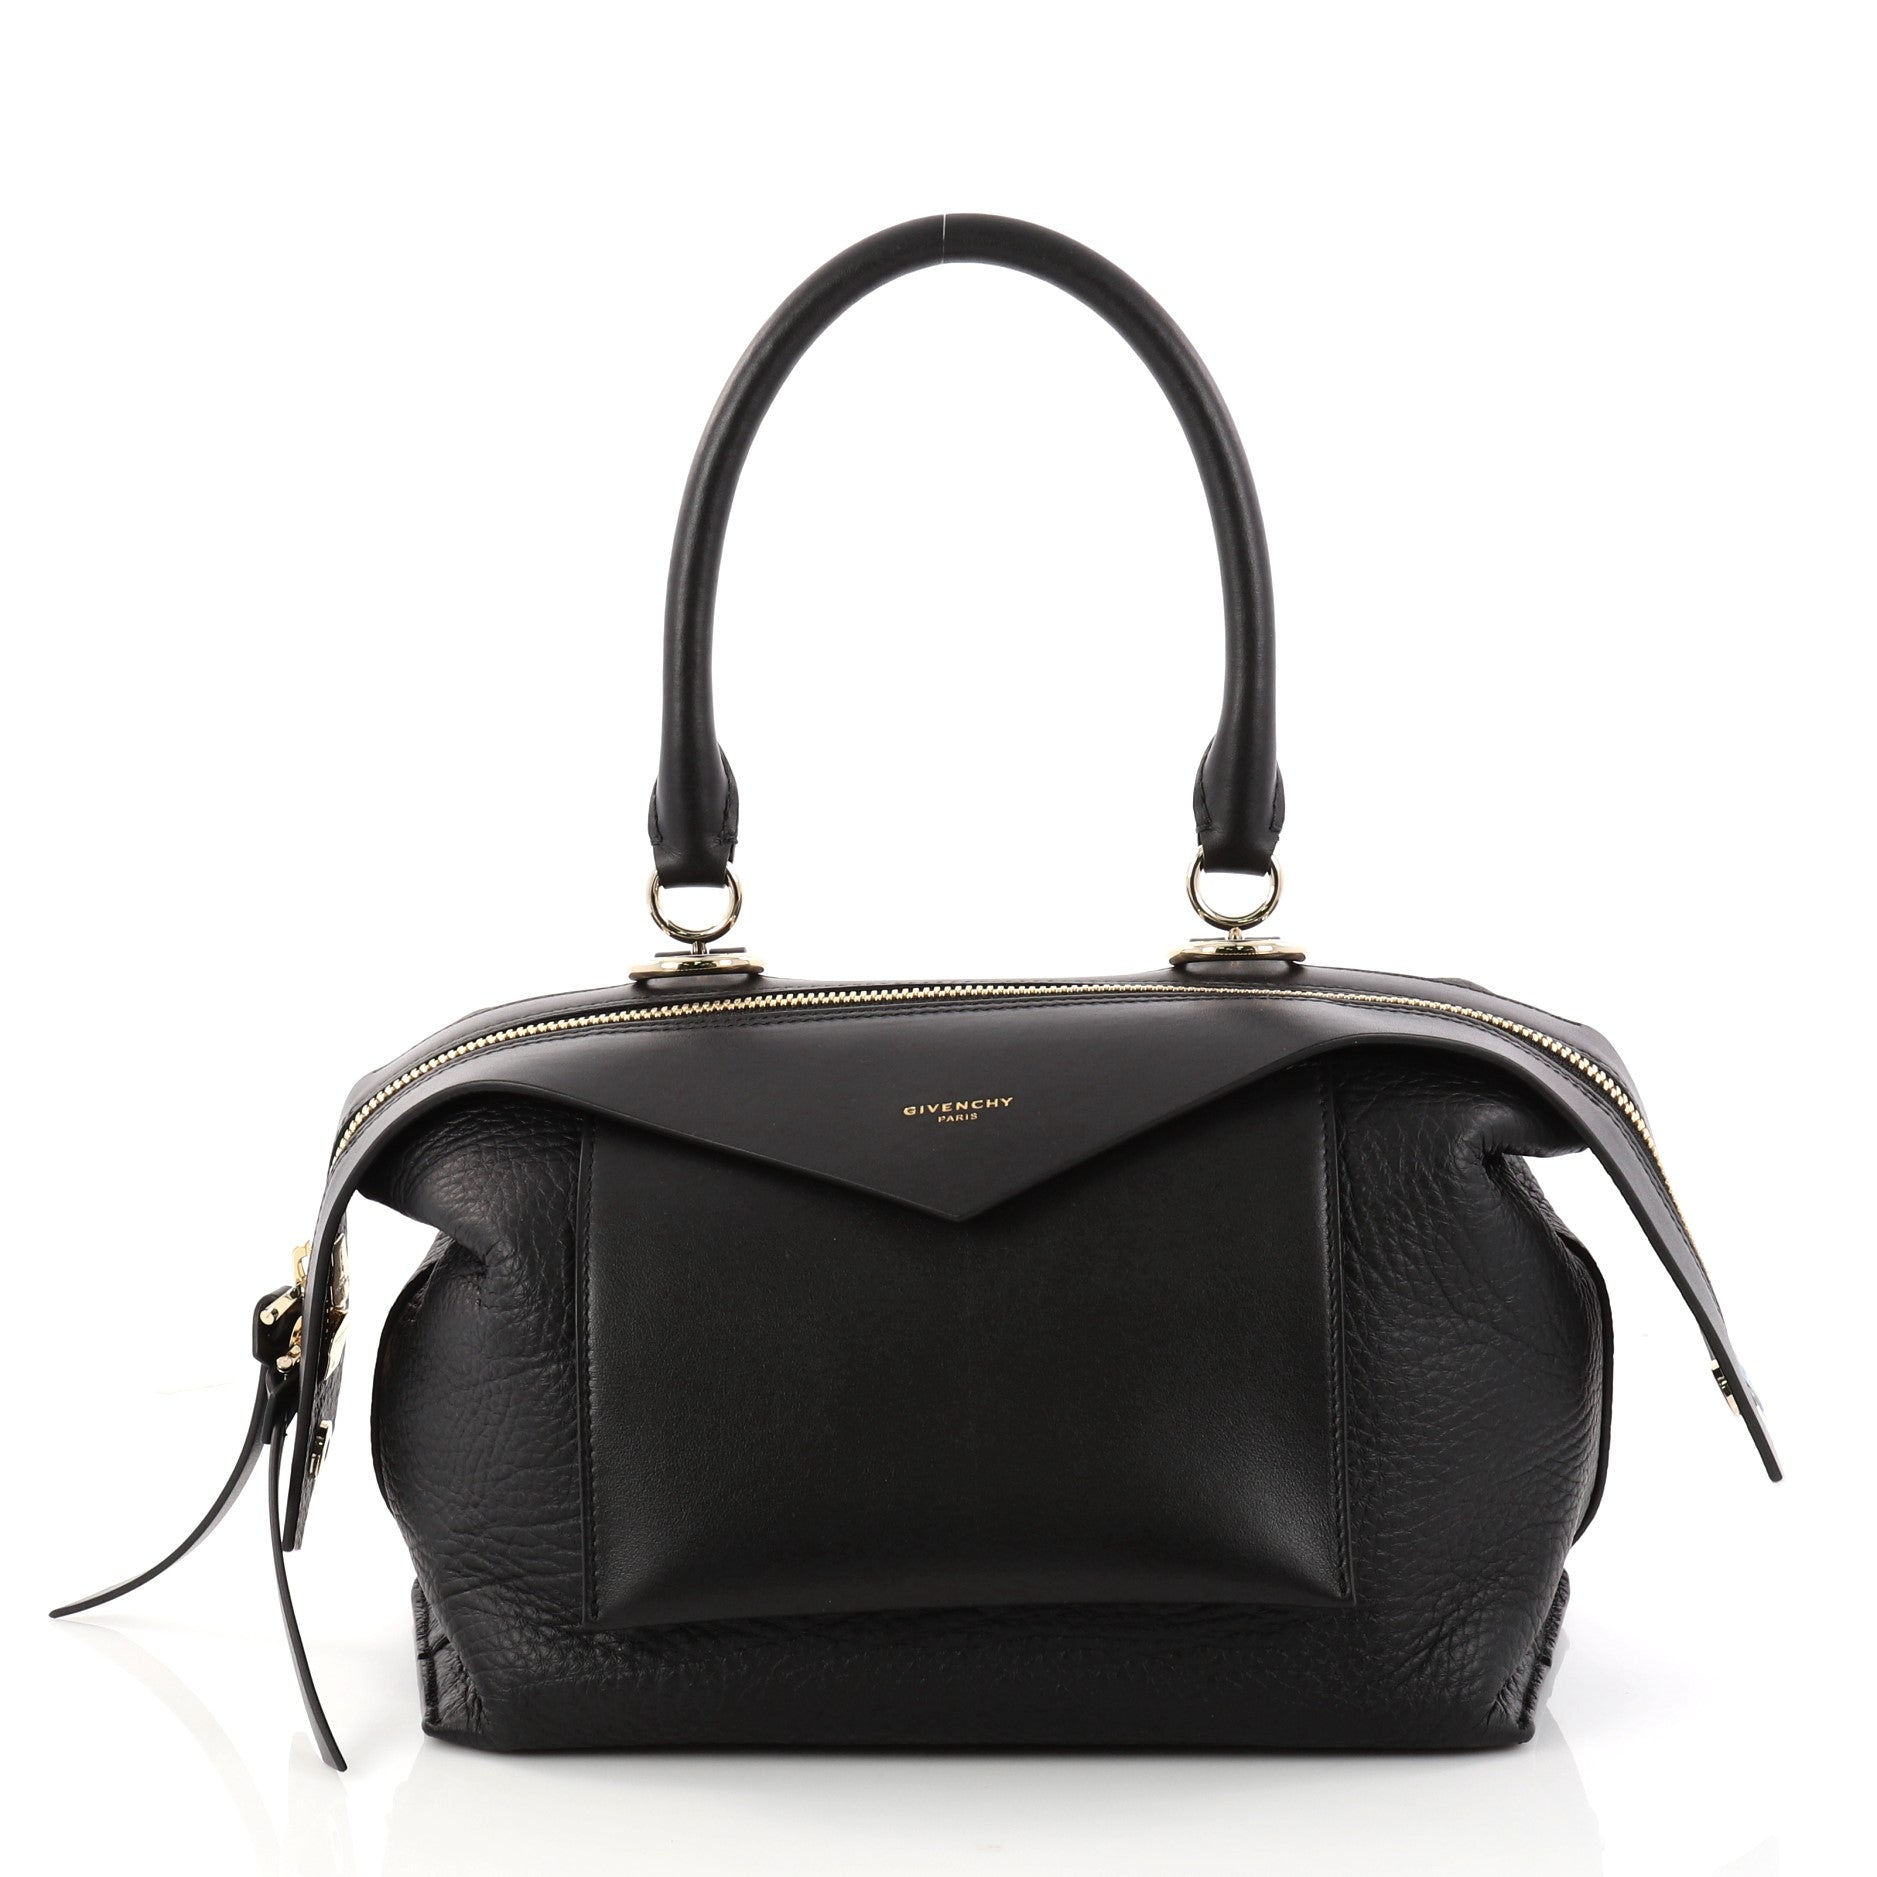 Sway Bag Leather Small